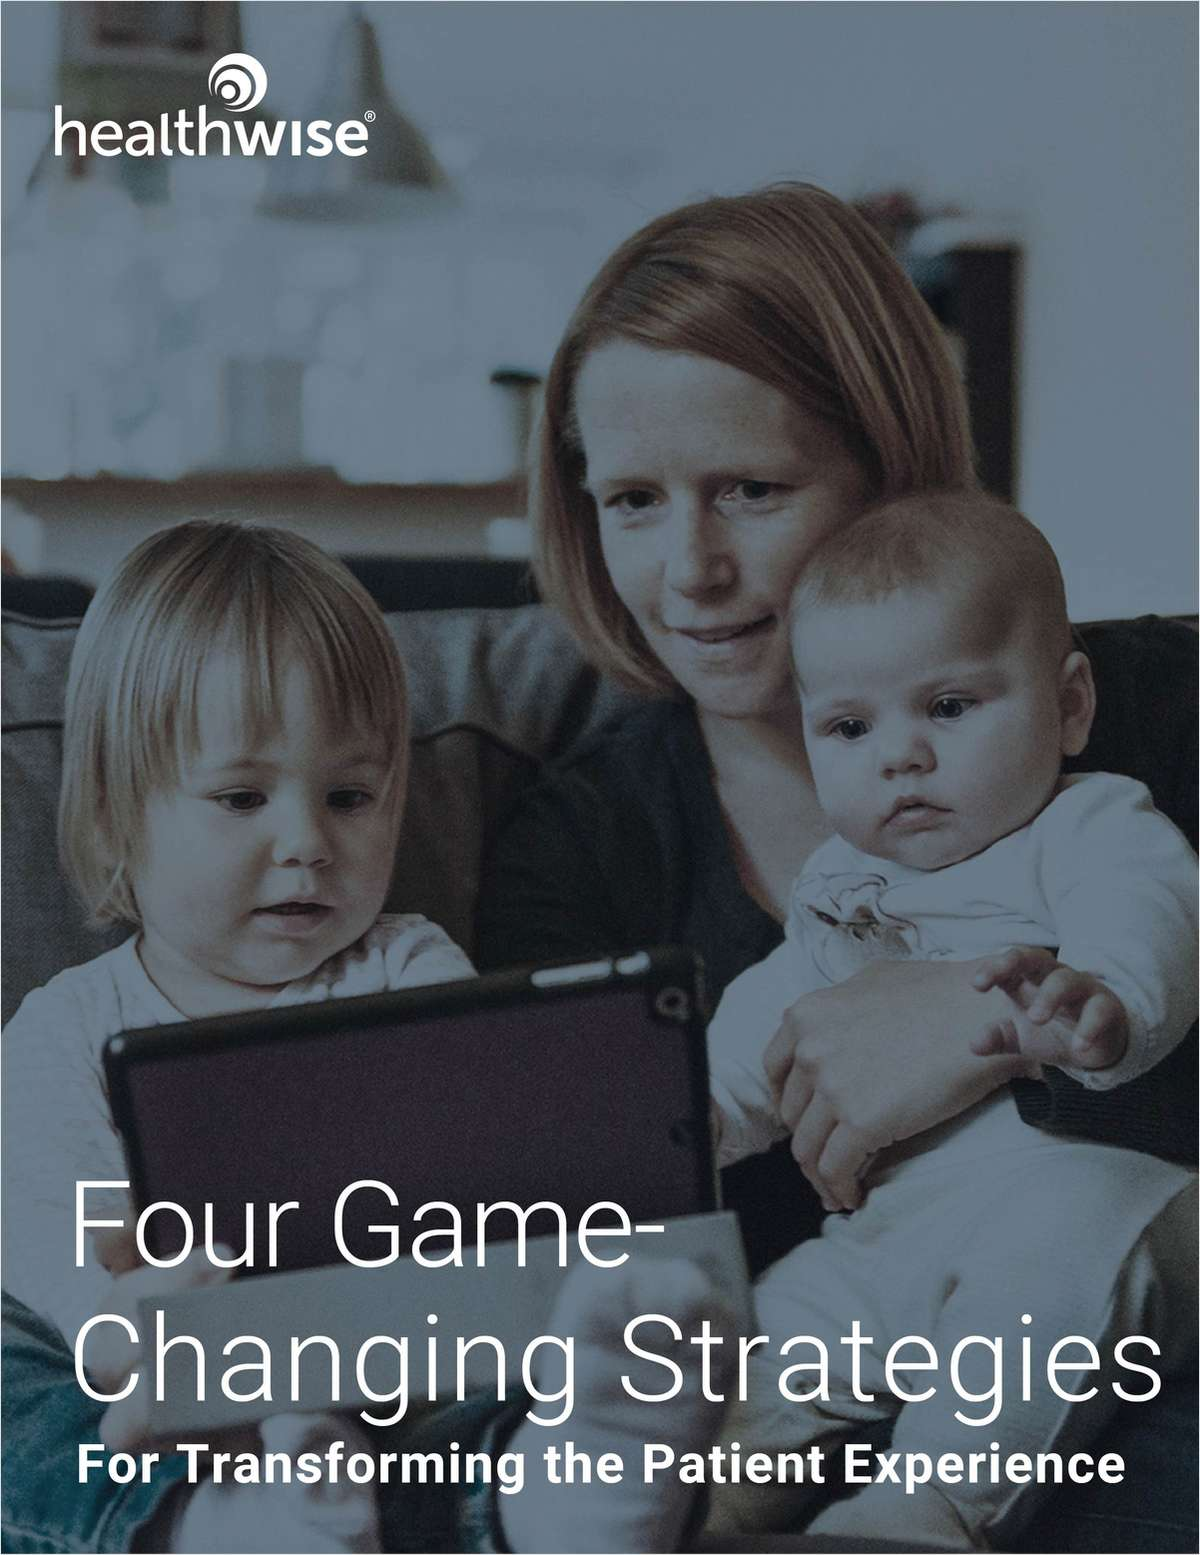 4 Game-Changing Strategies for Transforming the Patient Experience